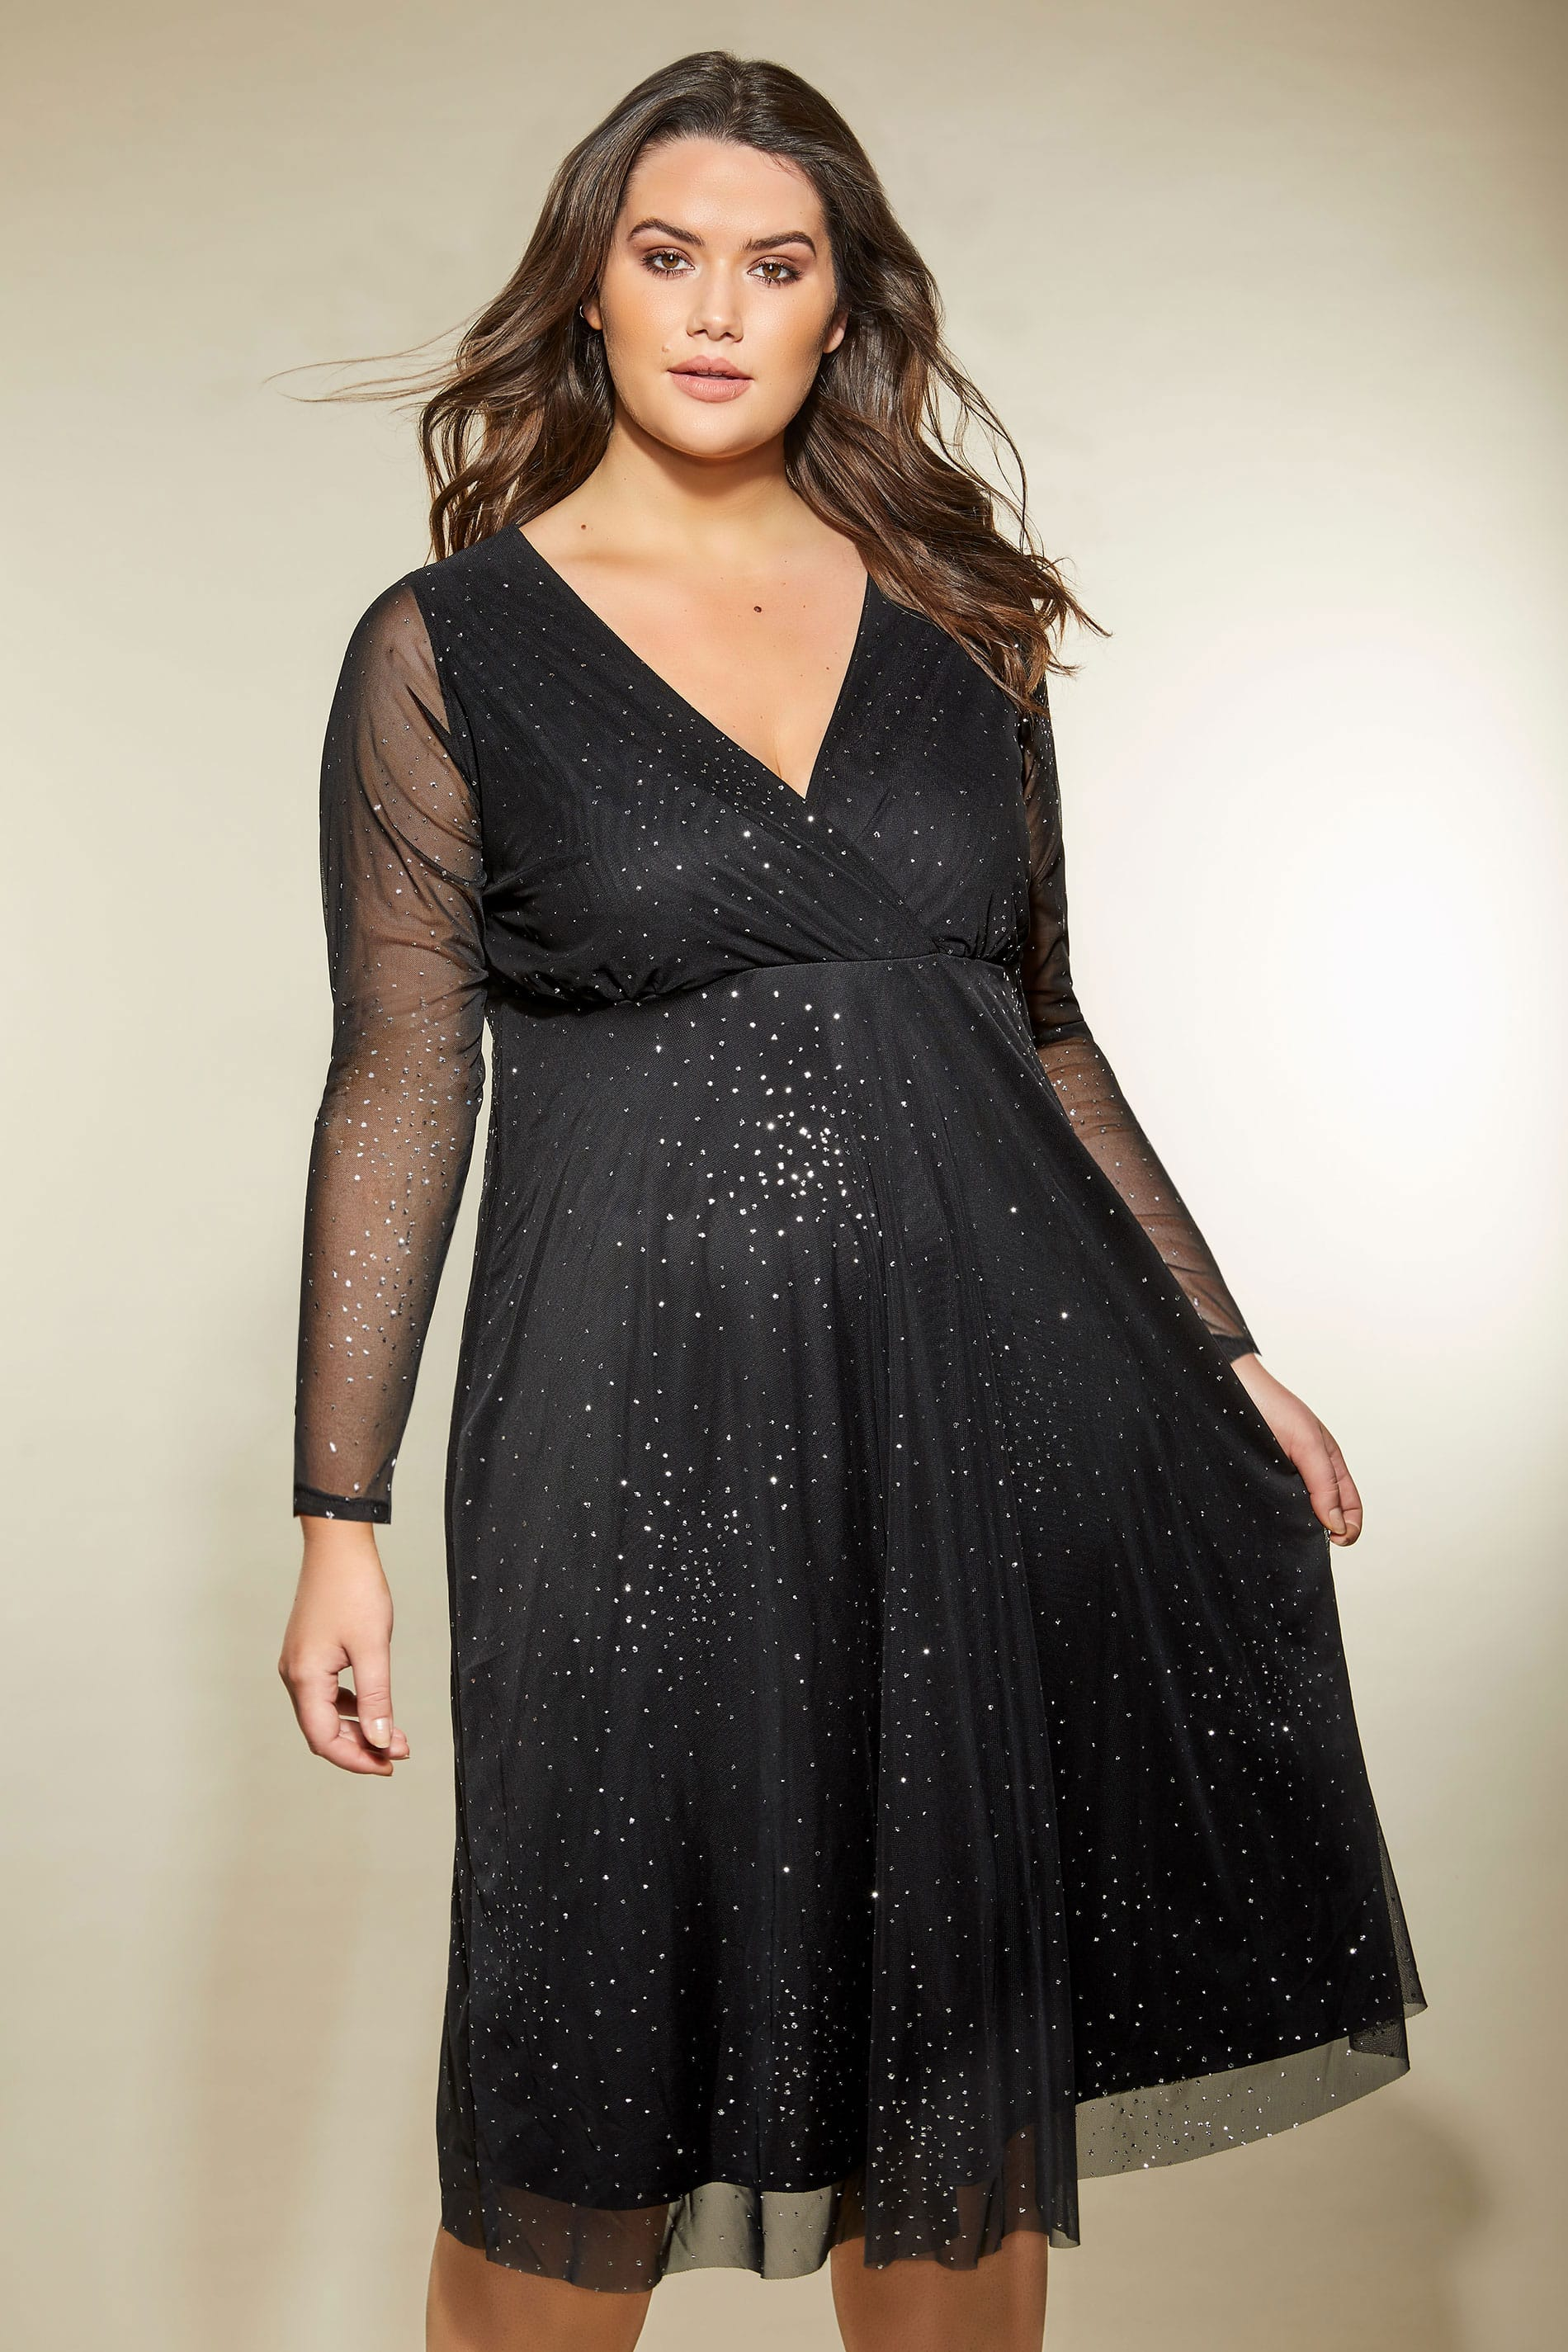 24 Hr Stores Near Me >> YOURS LONDON Black Star Burst Glittery Mesh Dress, plus size 16 to 32